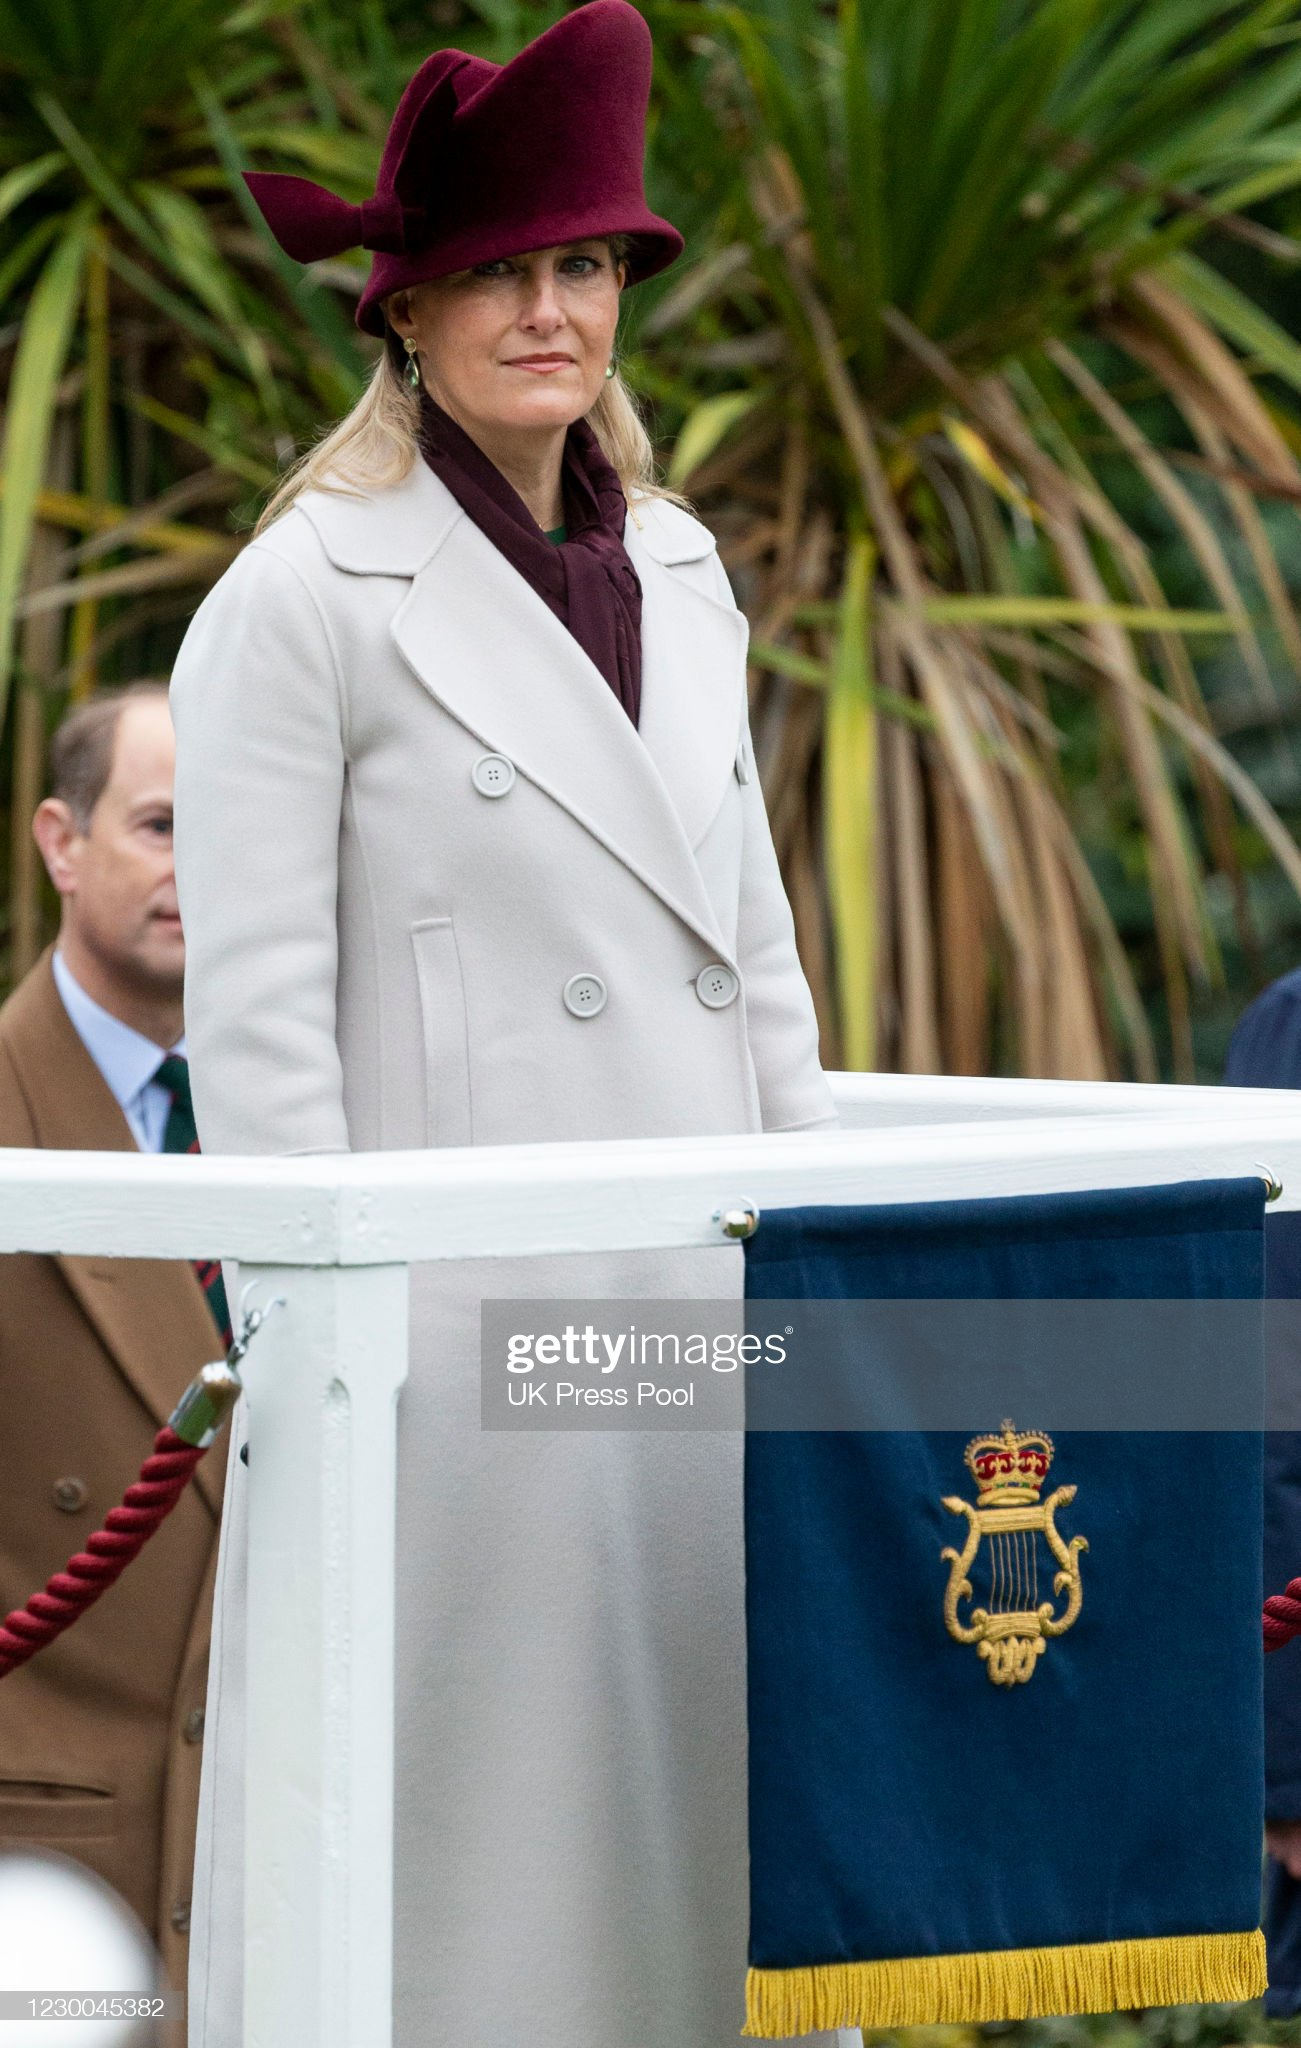 https://media.gettyimages.com/photos/sophie-countess-of-wessex-visits-the-corps-of-army-music-for-a-and-picture-id1230045382?s=2048x2048